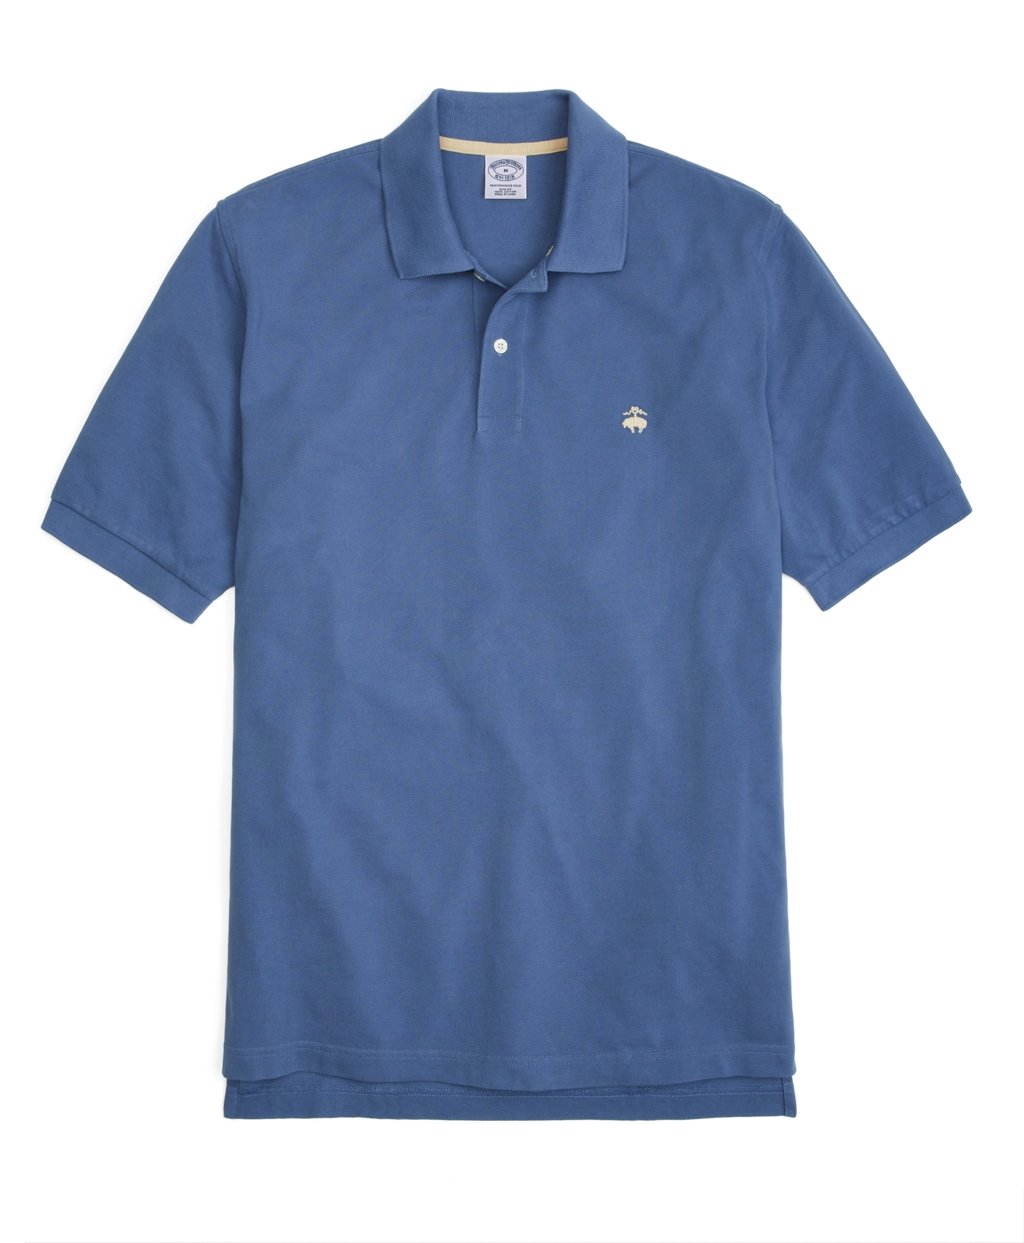 Brooks brothers golden fleece slim fit performance polo Brooks brothers shirt size guide